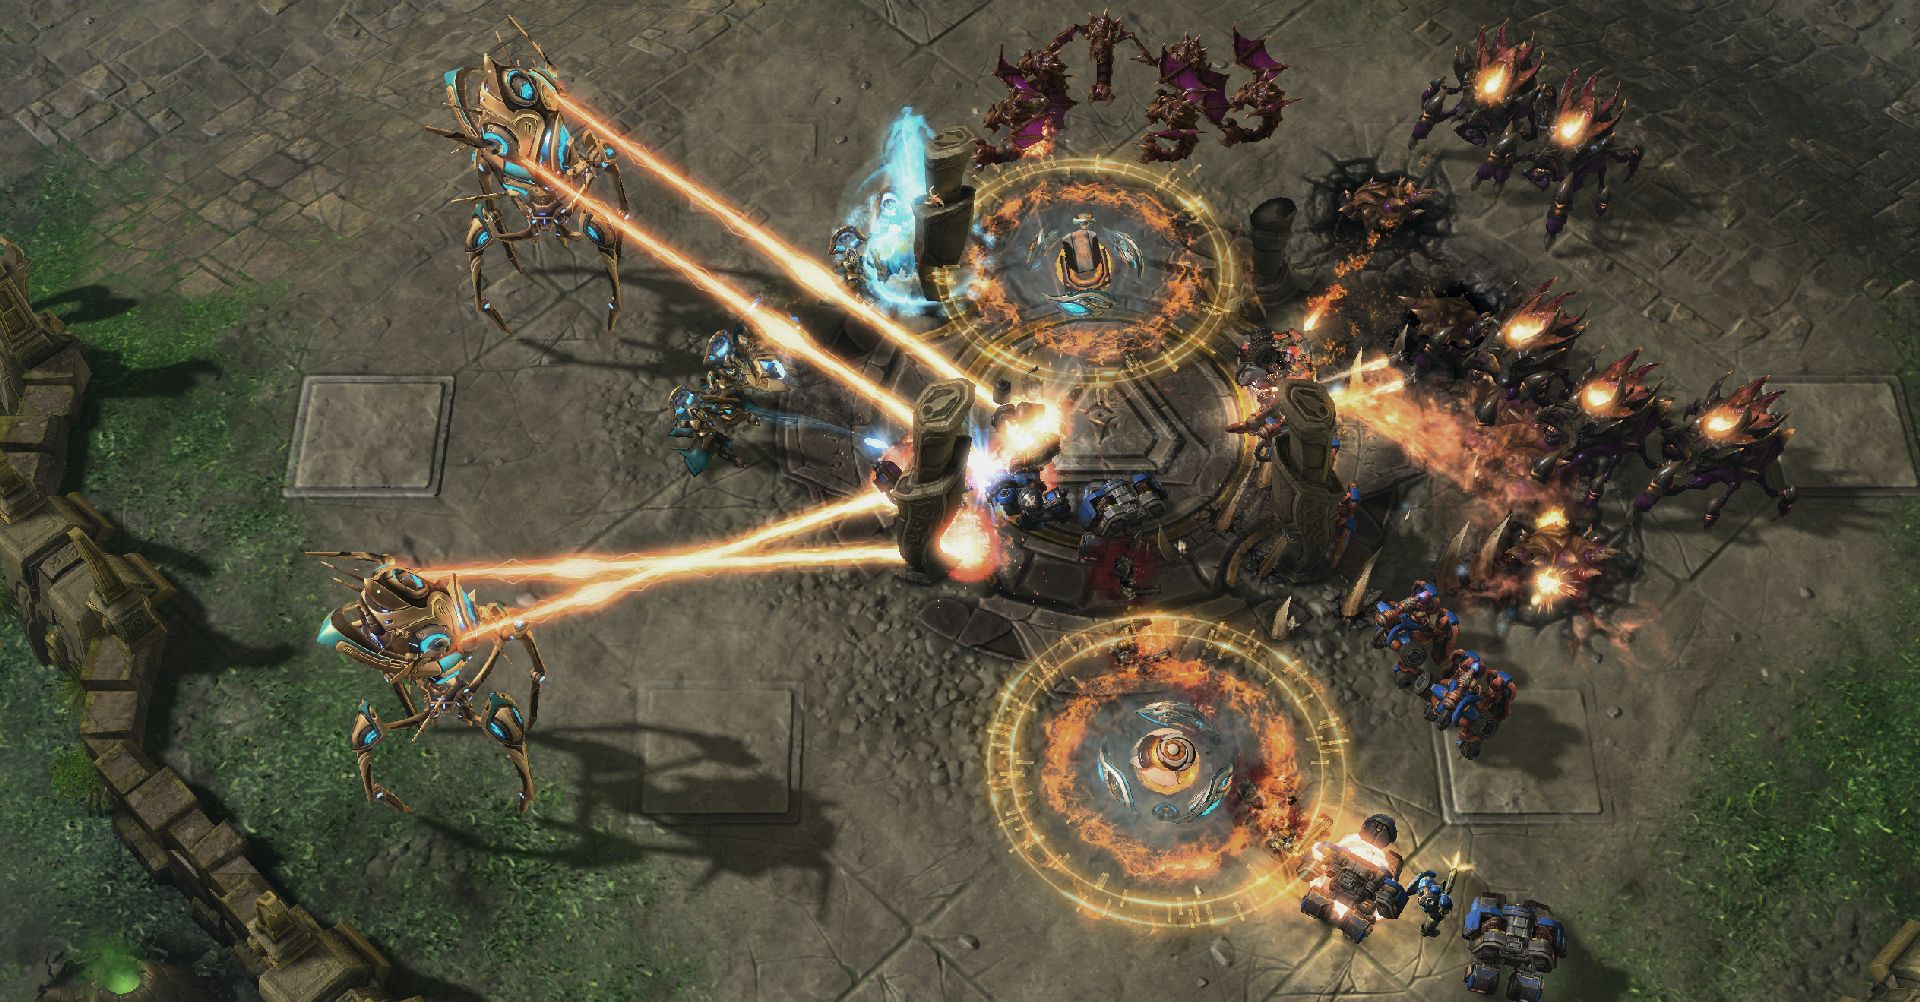 https://s3-us-west-1.amazonaws.com/shacknews/assets/topic/6651/StarCraft_II_LotV_GDC_CB_Preview_All_New_CB_Units.jpg